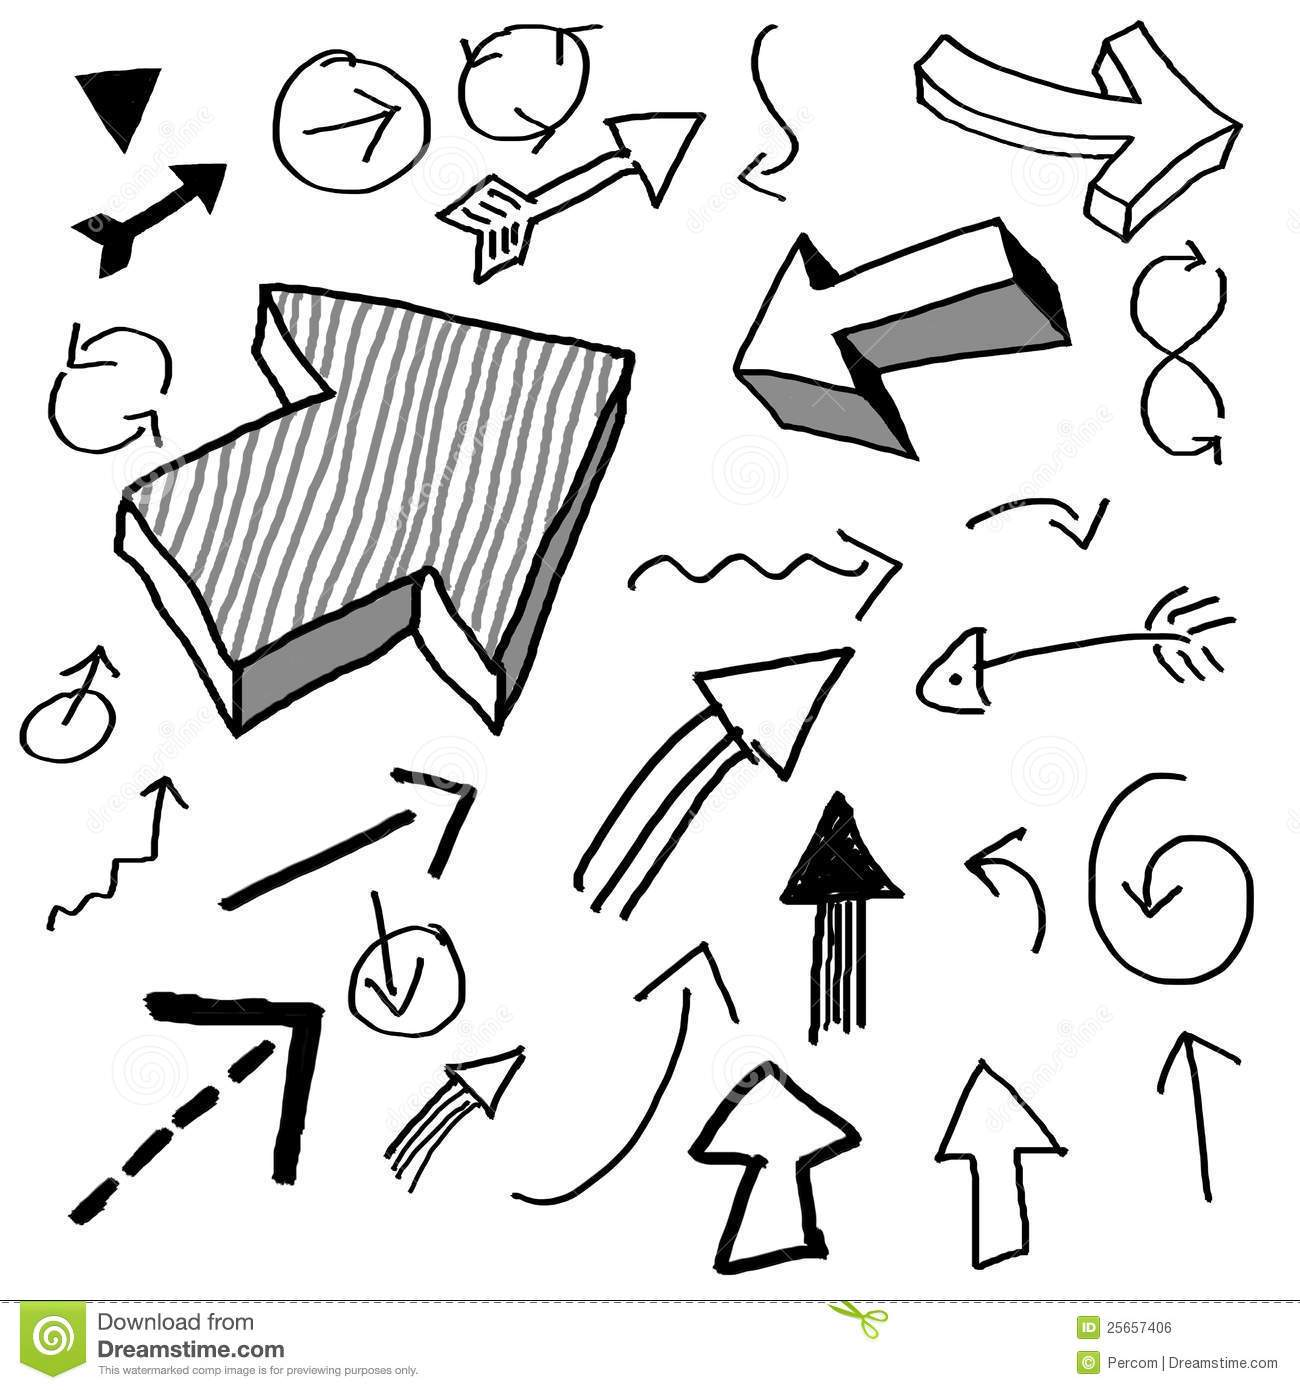 Doodle arrow clipart free image black and white stock Doodle arrow clipart free » Clipart Portal image black and white stock